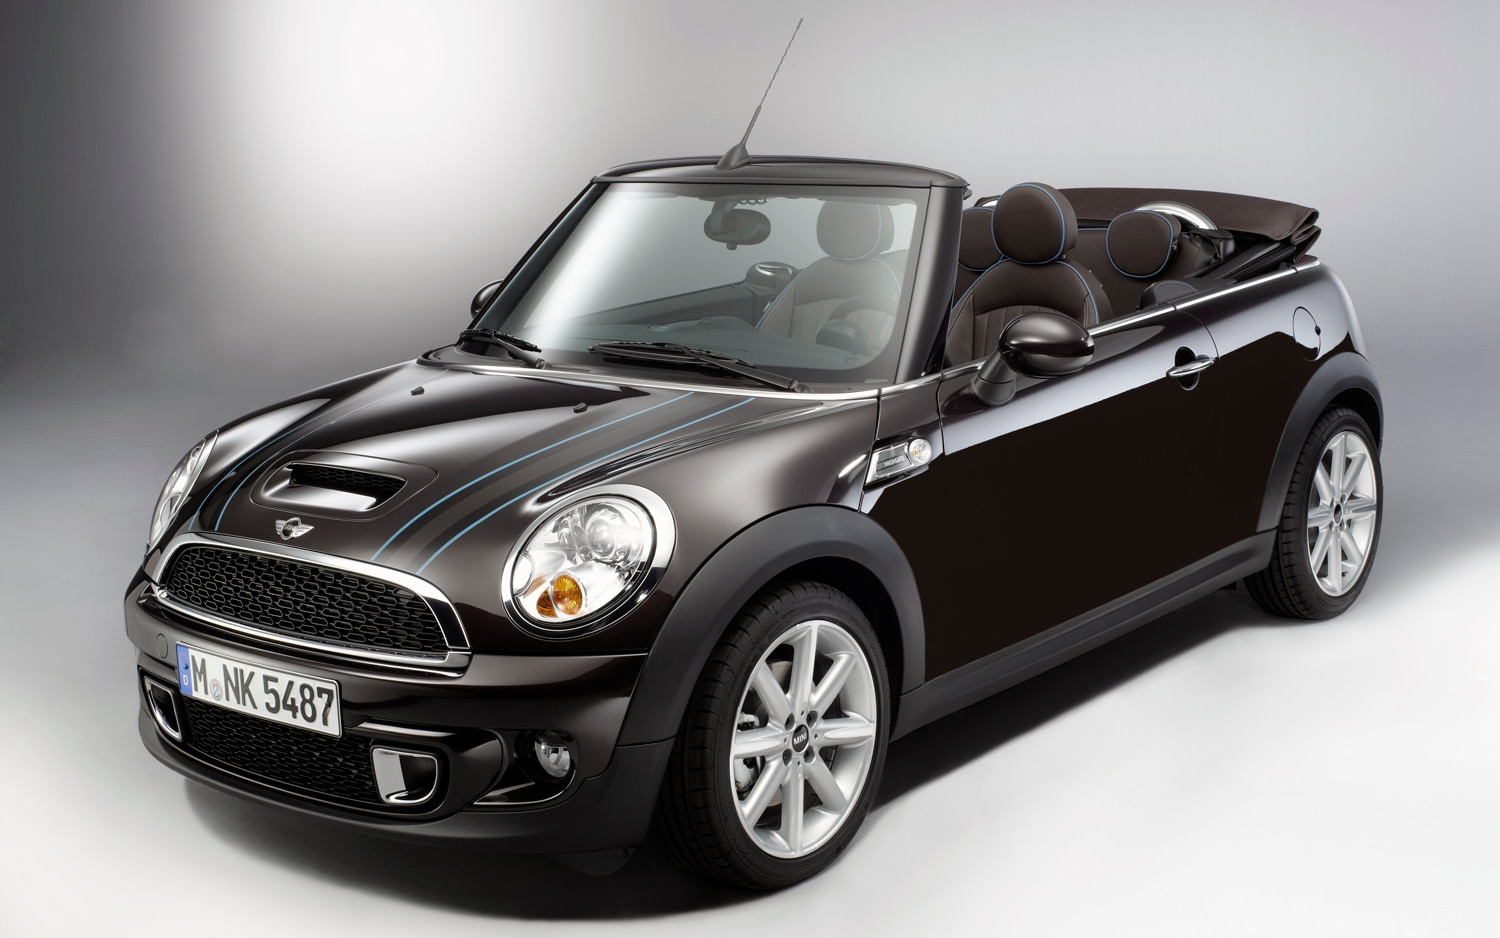 2012 Mini Cooper S Convertible Highgate Front Three Quarter Roof Down1